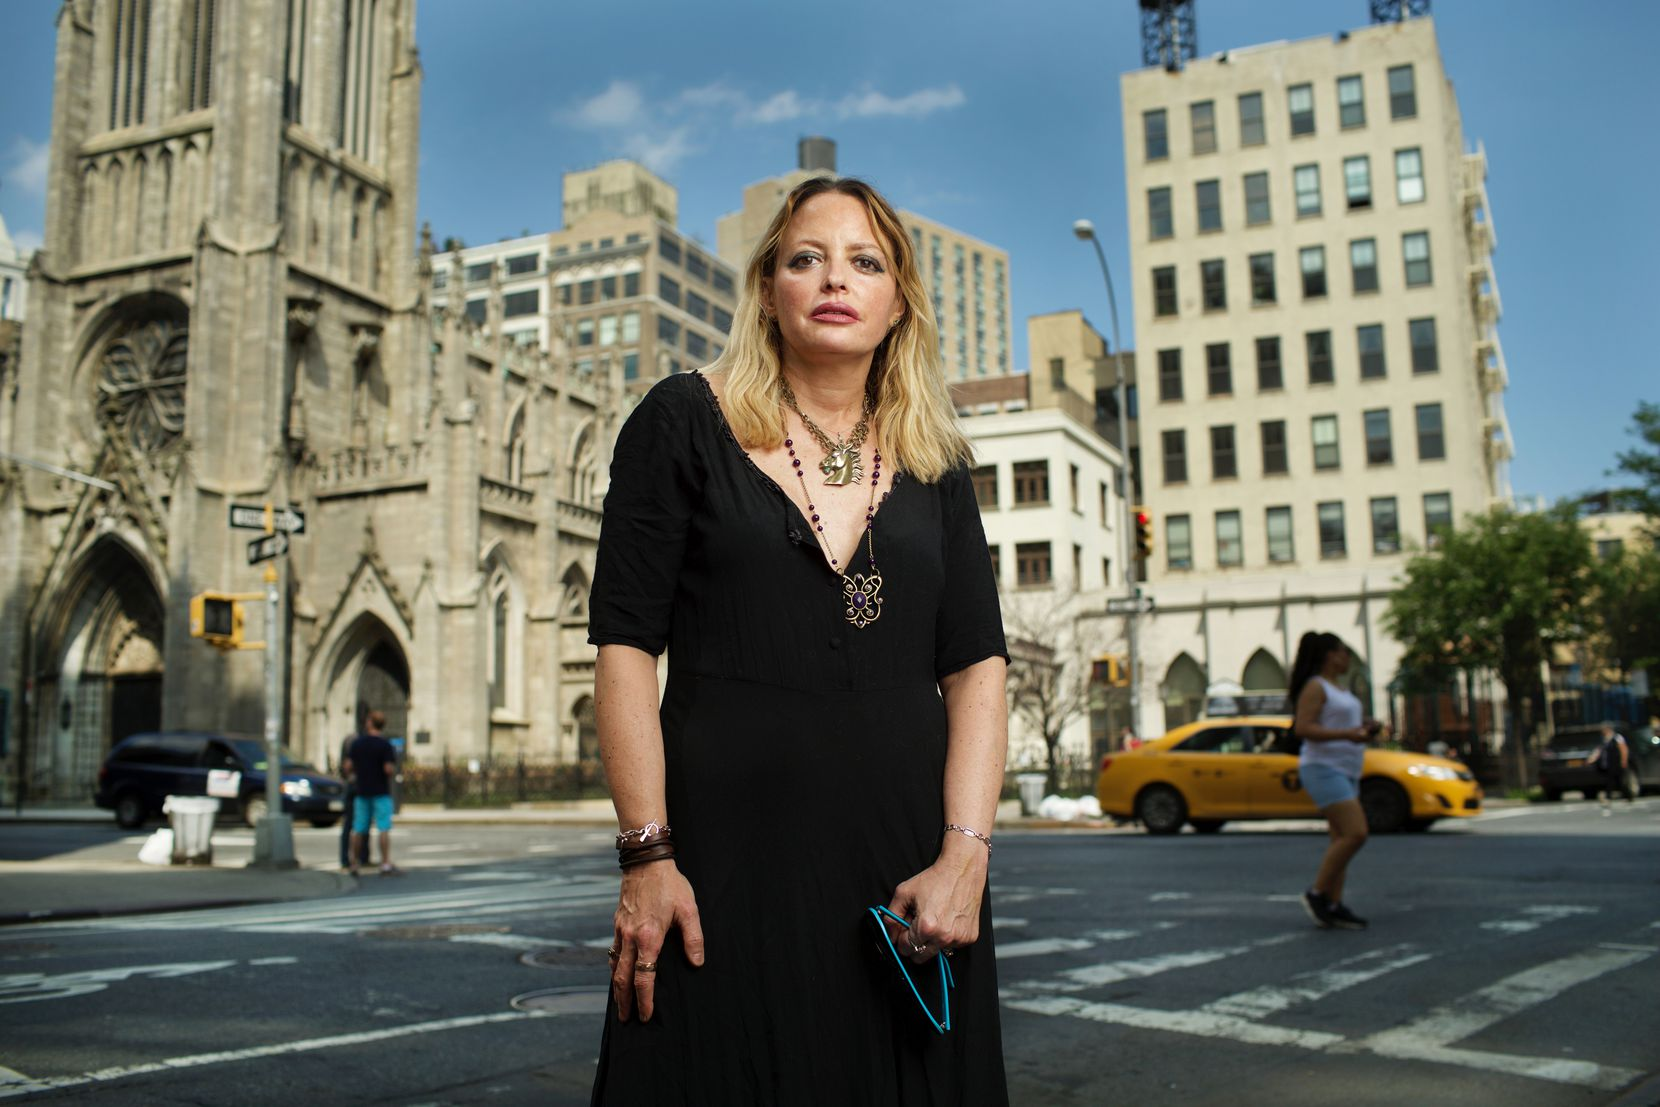 Elizabeth Lee Wurtzel, known for publishing her best-selling memoir 'Prozac Nation' at the age of 26, is shown in 2015. She holds a BA from Harvard College and a JD from Yale Law School.